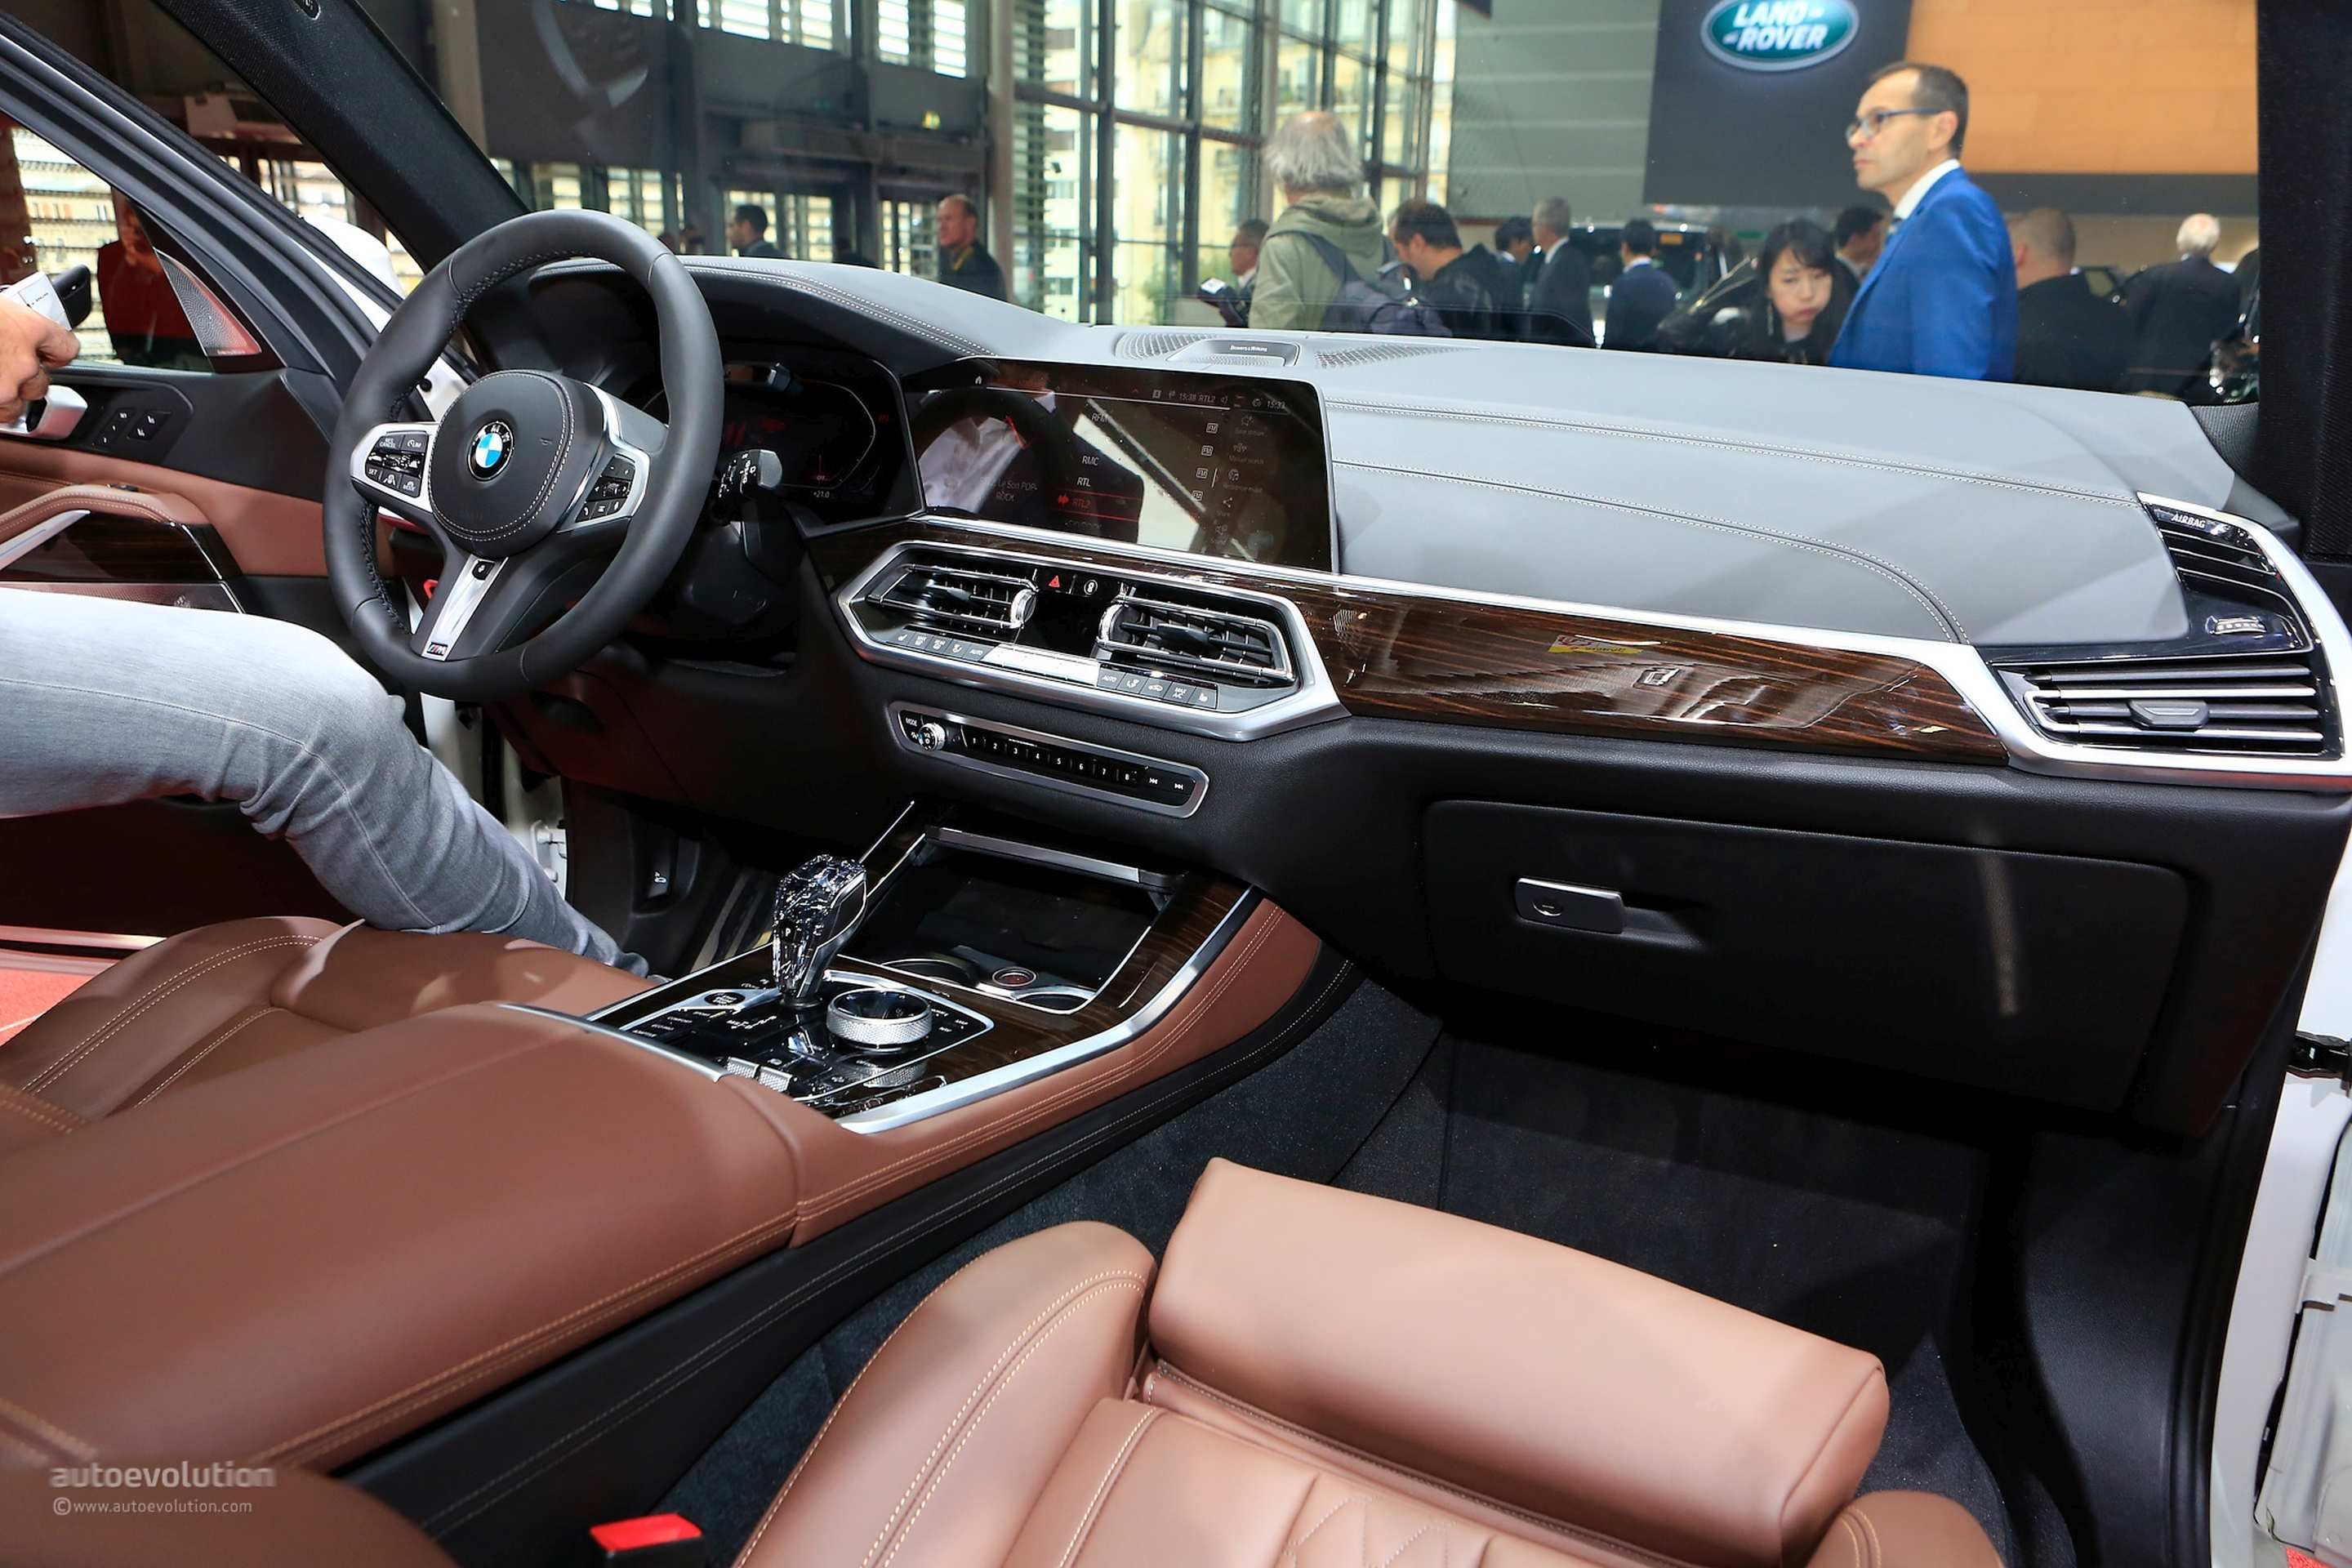 25 New 2019 Bmw Terrain Interior Spy Shoot by 2019 Bmw Terrain Interior